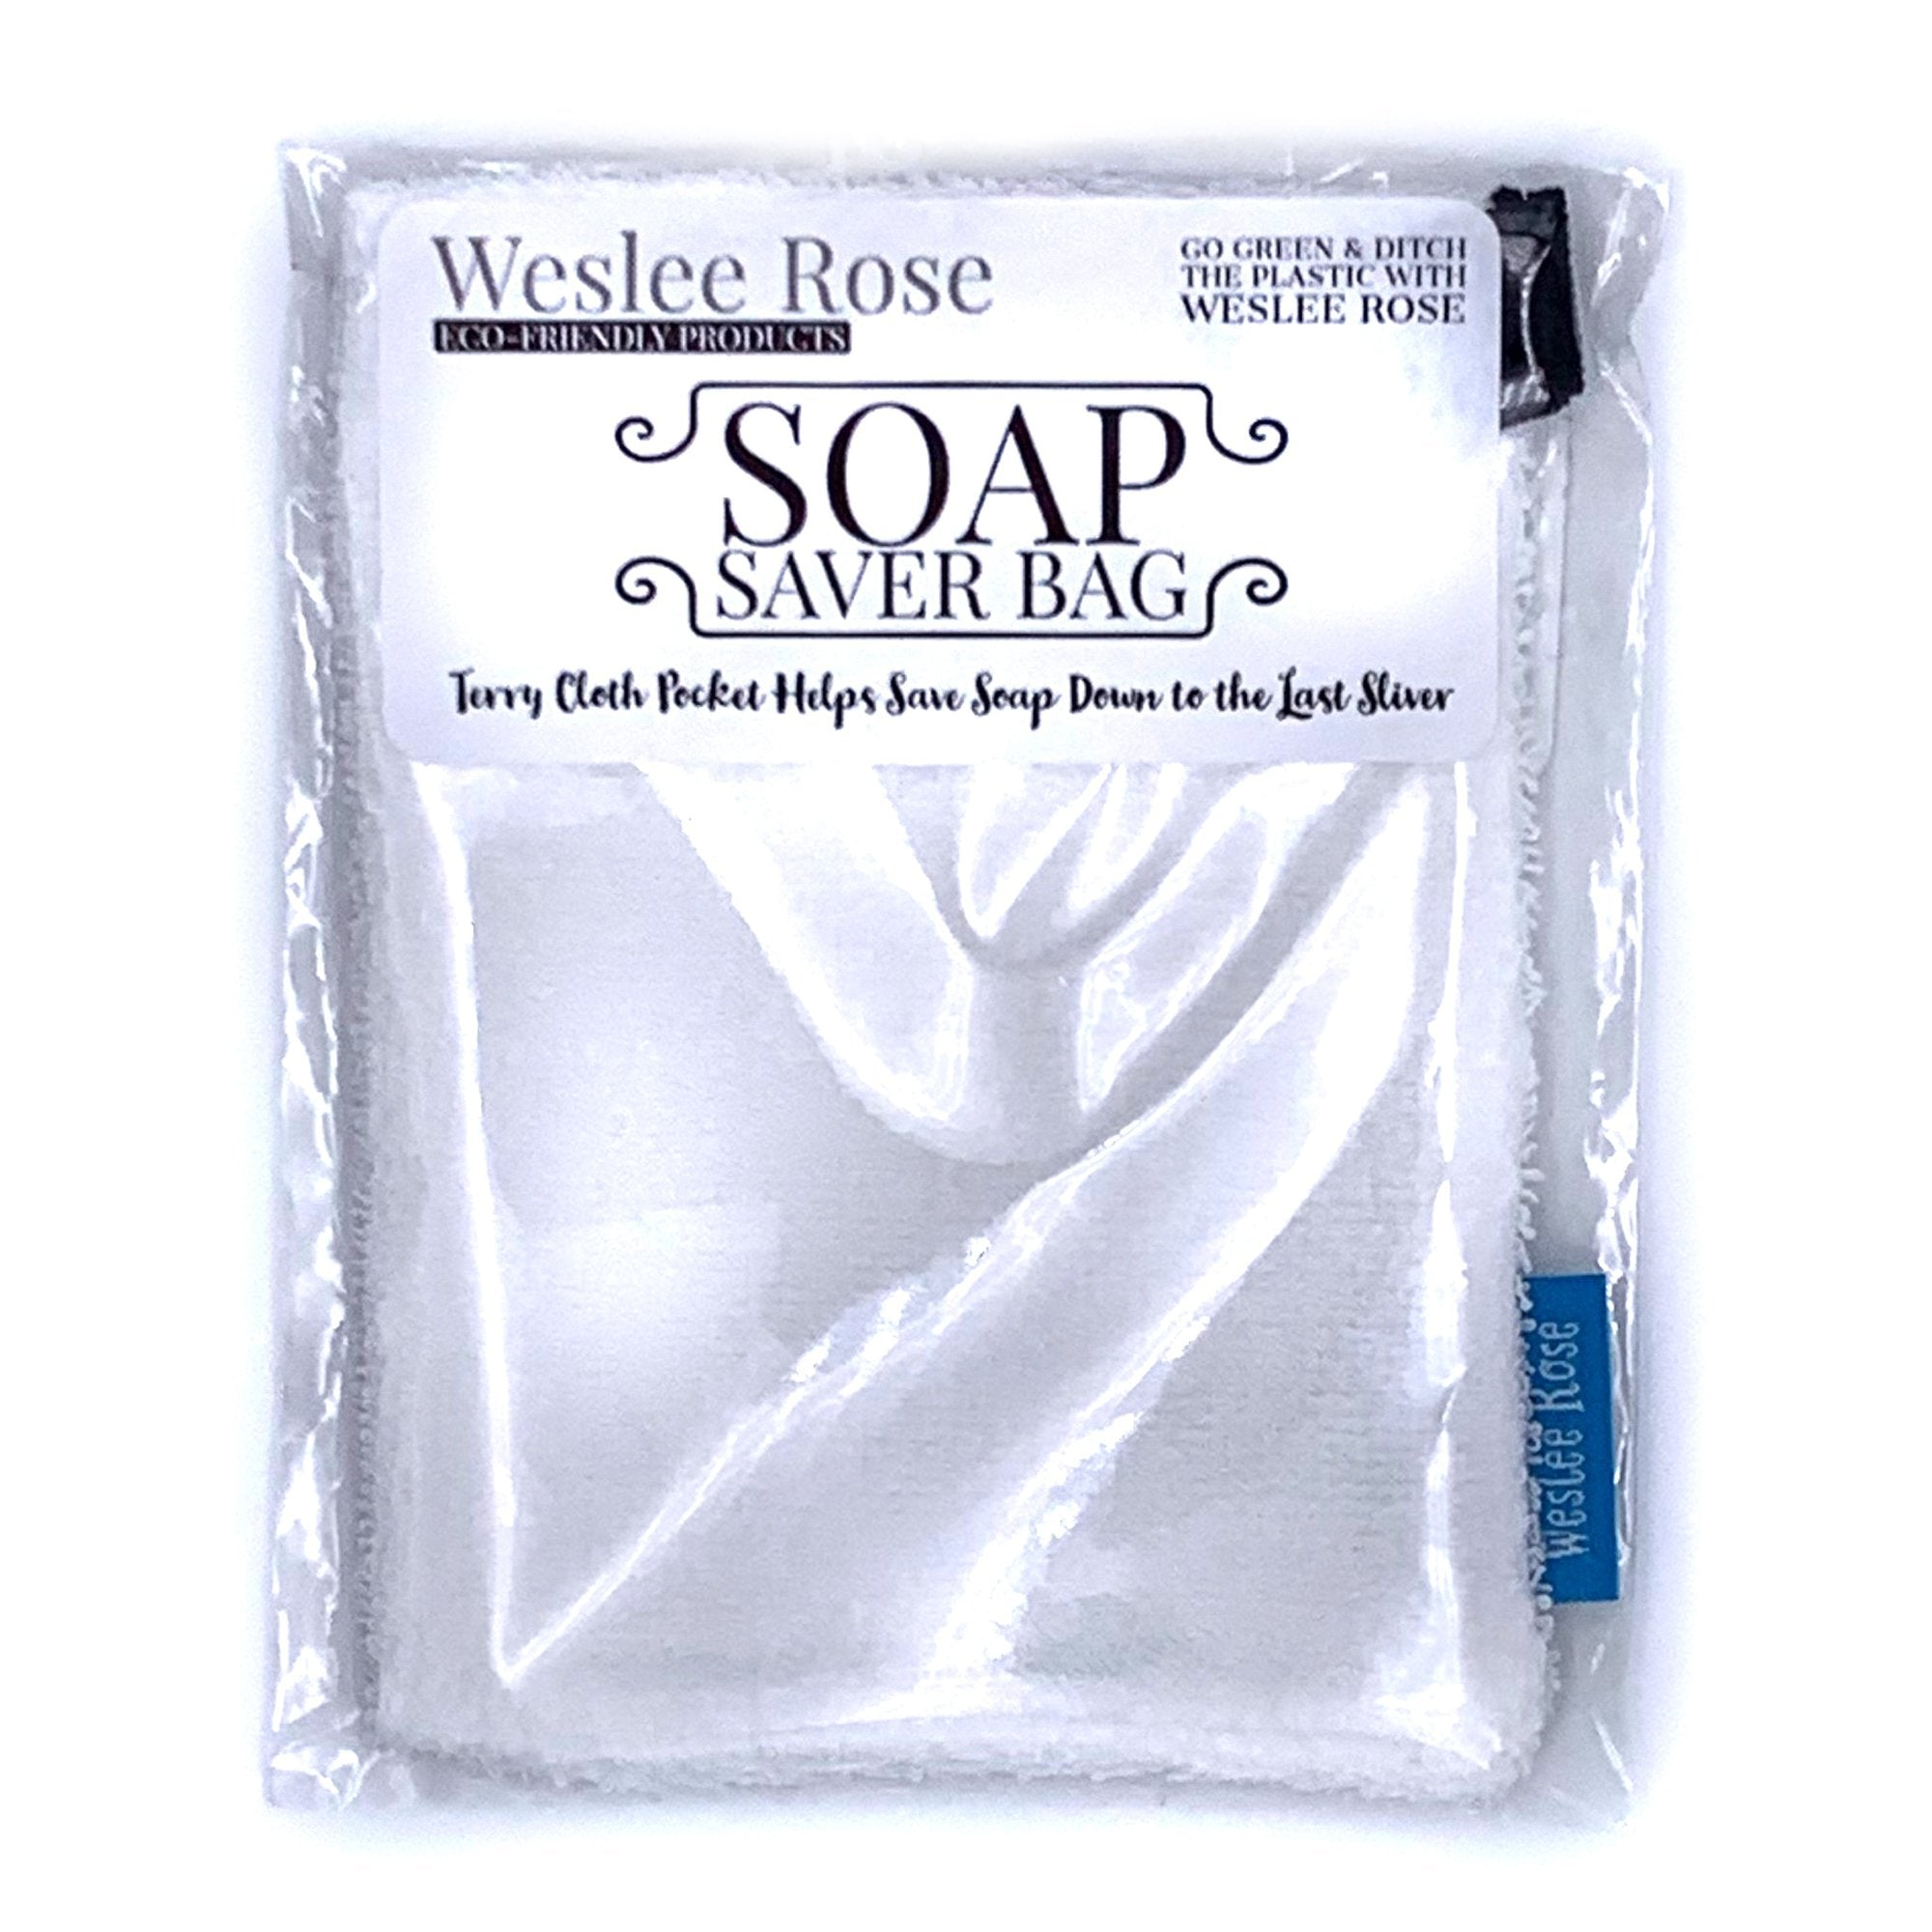 Soap Saver Bag